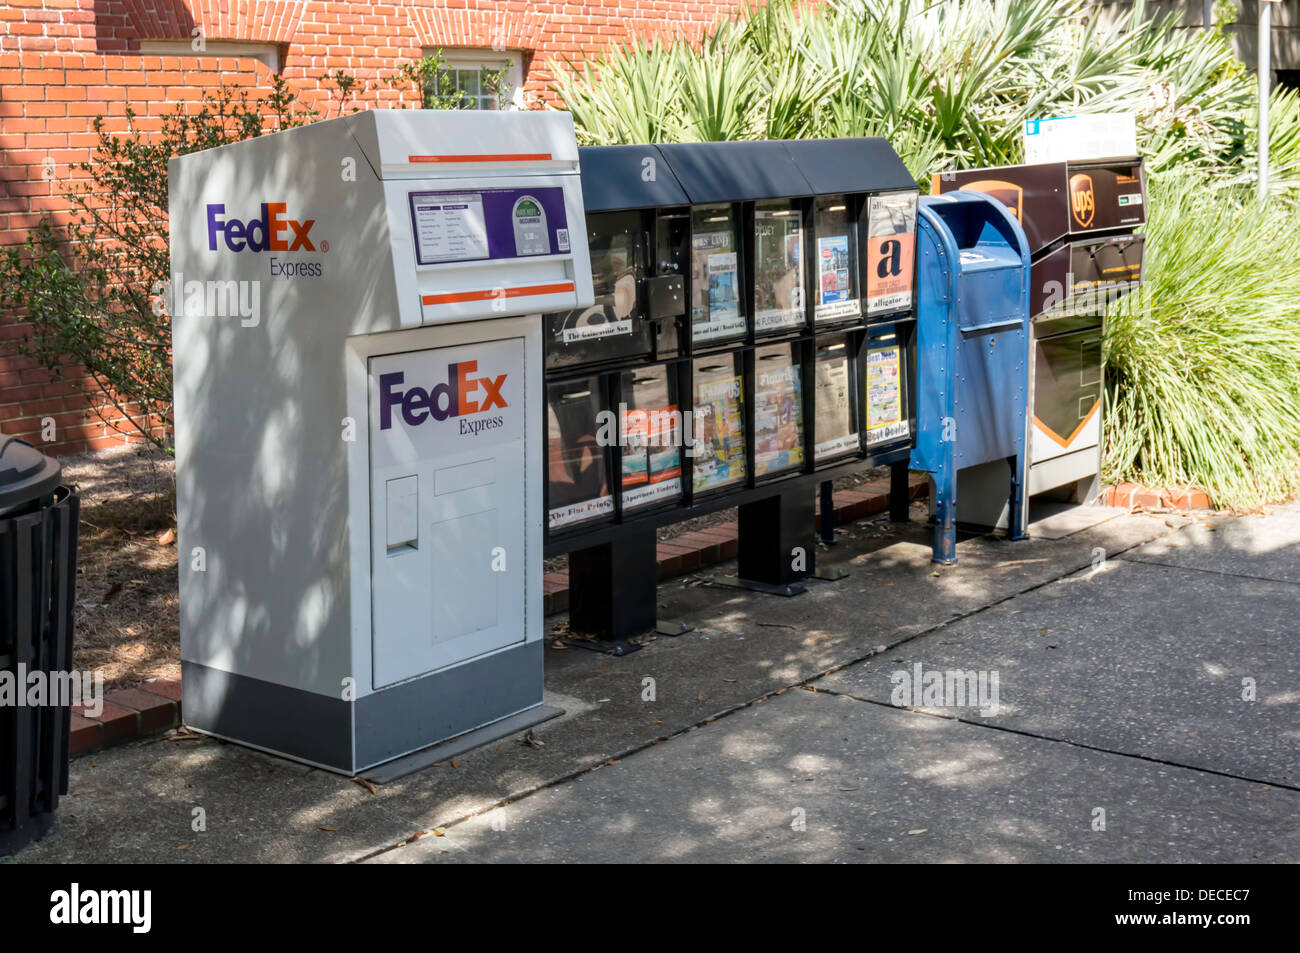 Cost of color printing at fedex - Color Printing Fedex Kinkos Fe Fedex Color Printing Cost Per Page Row Of Usps Mailbox